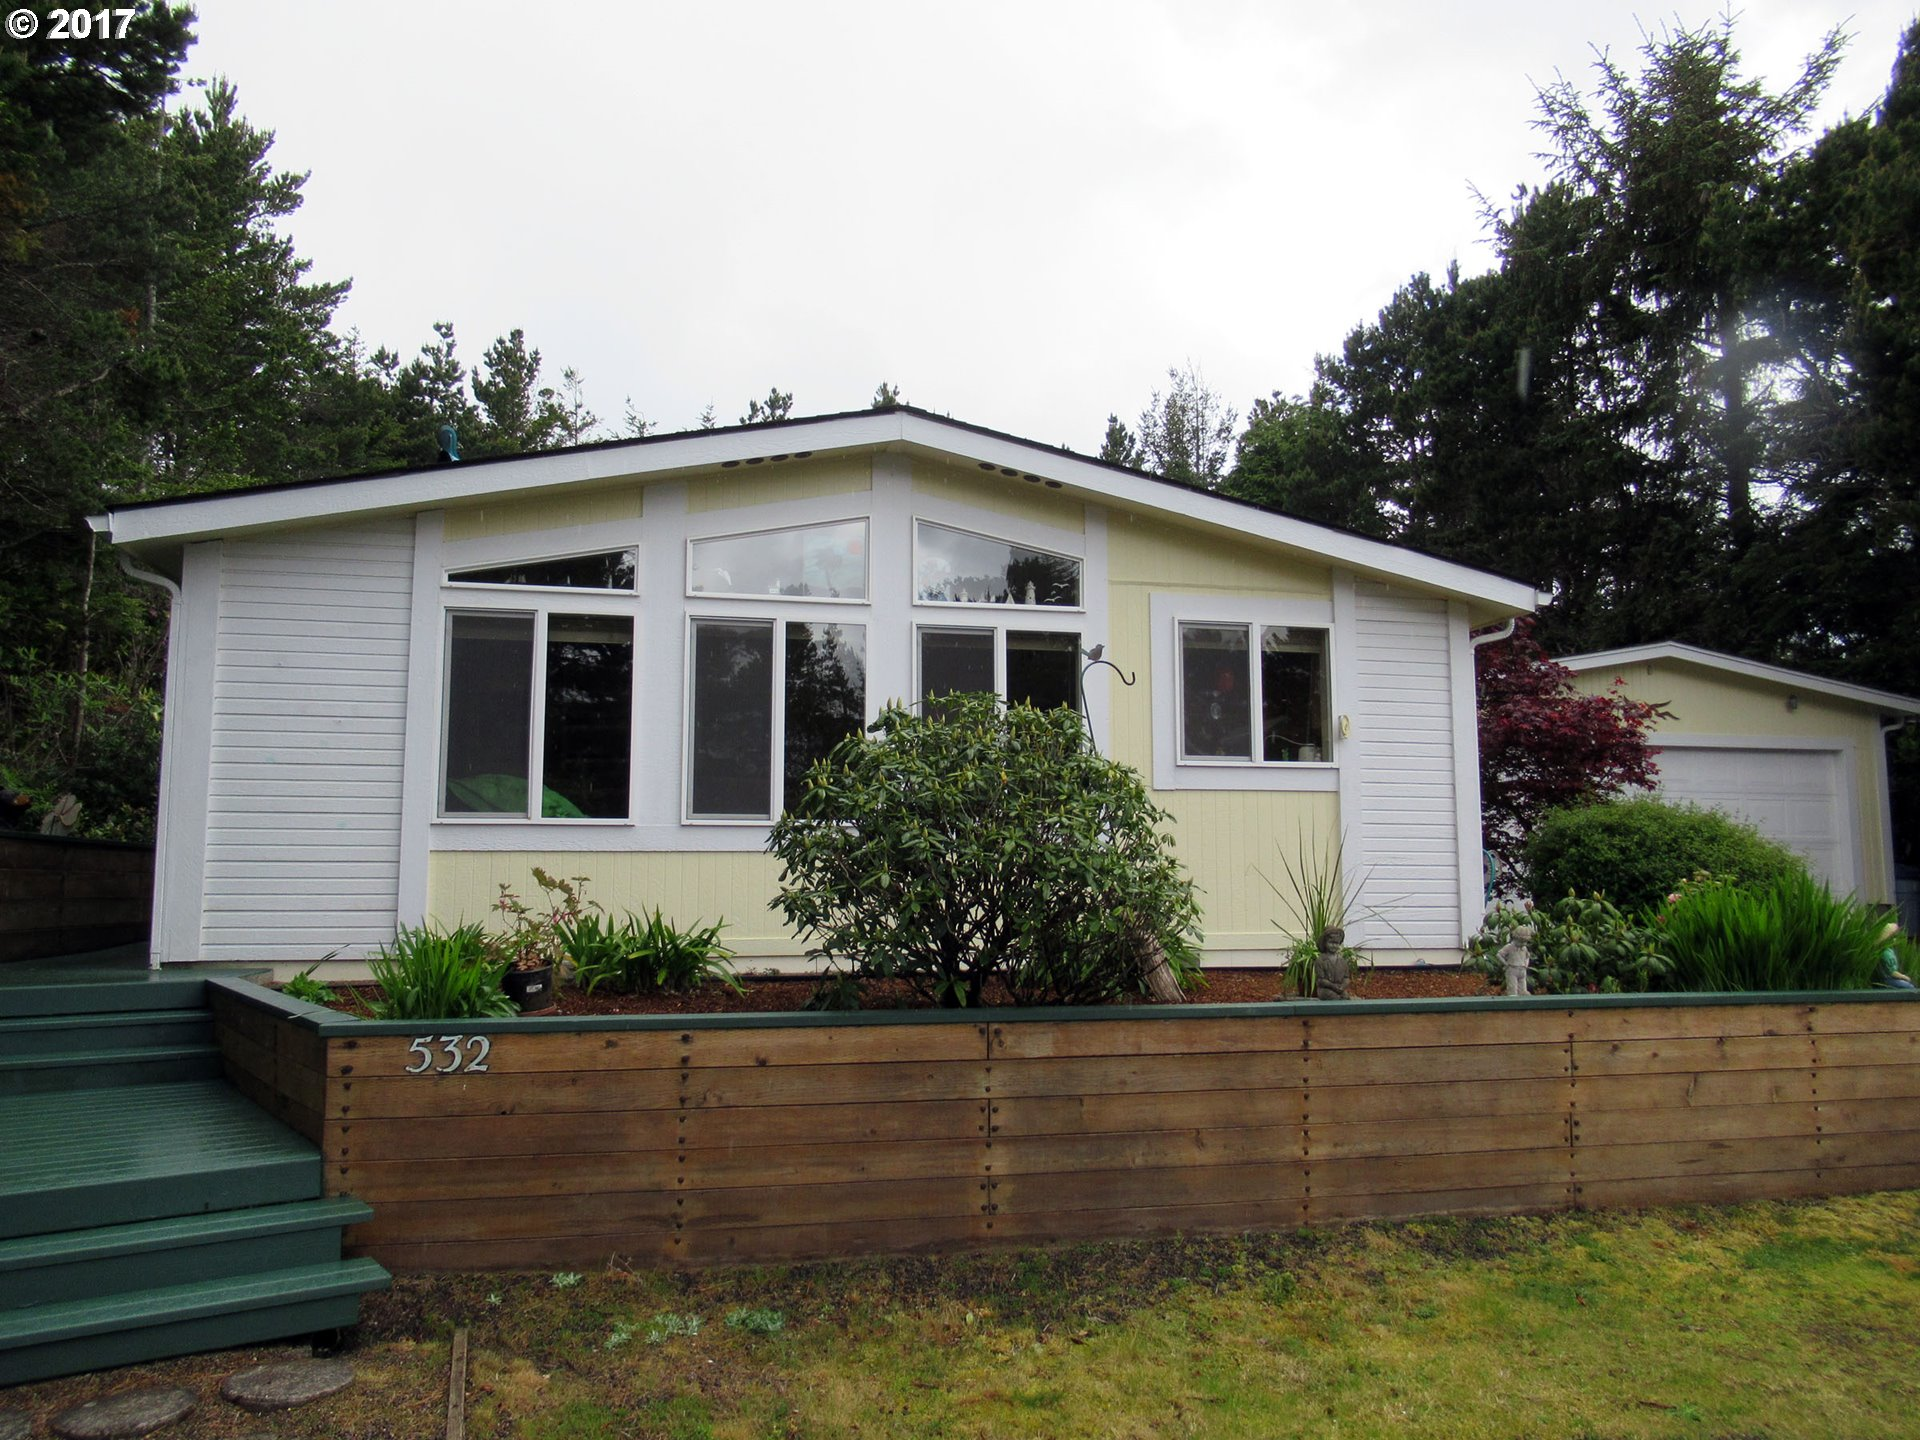 1601 RHODODENDRON DR SPAC 532, Florence, OR 97439